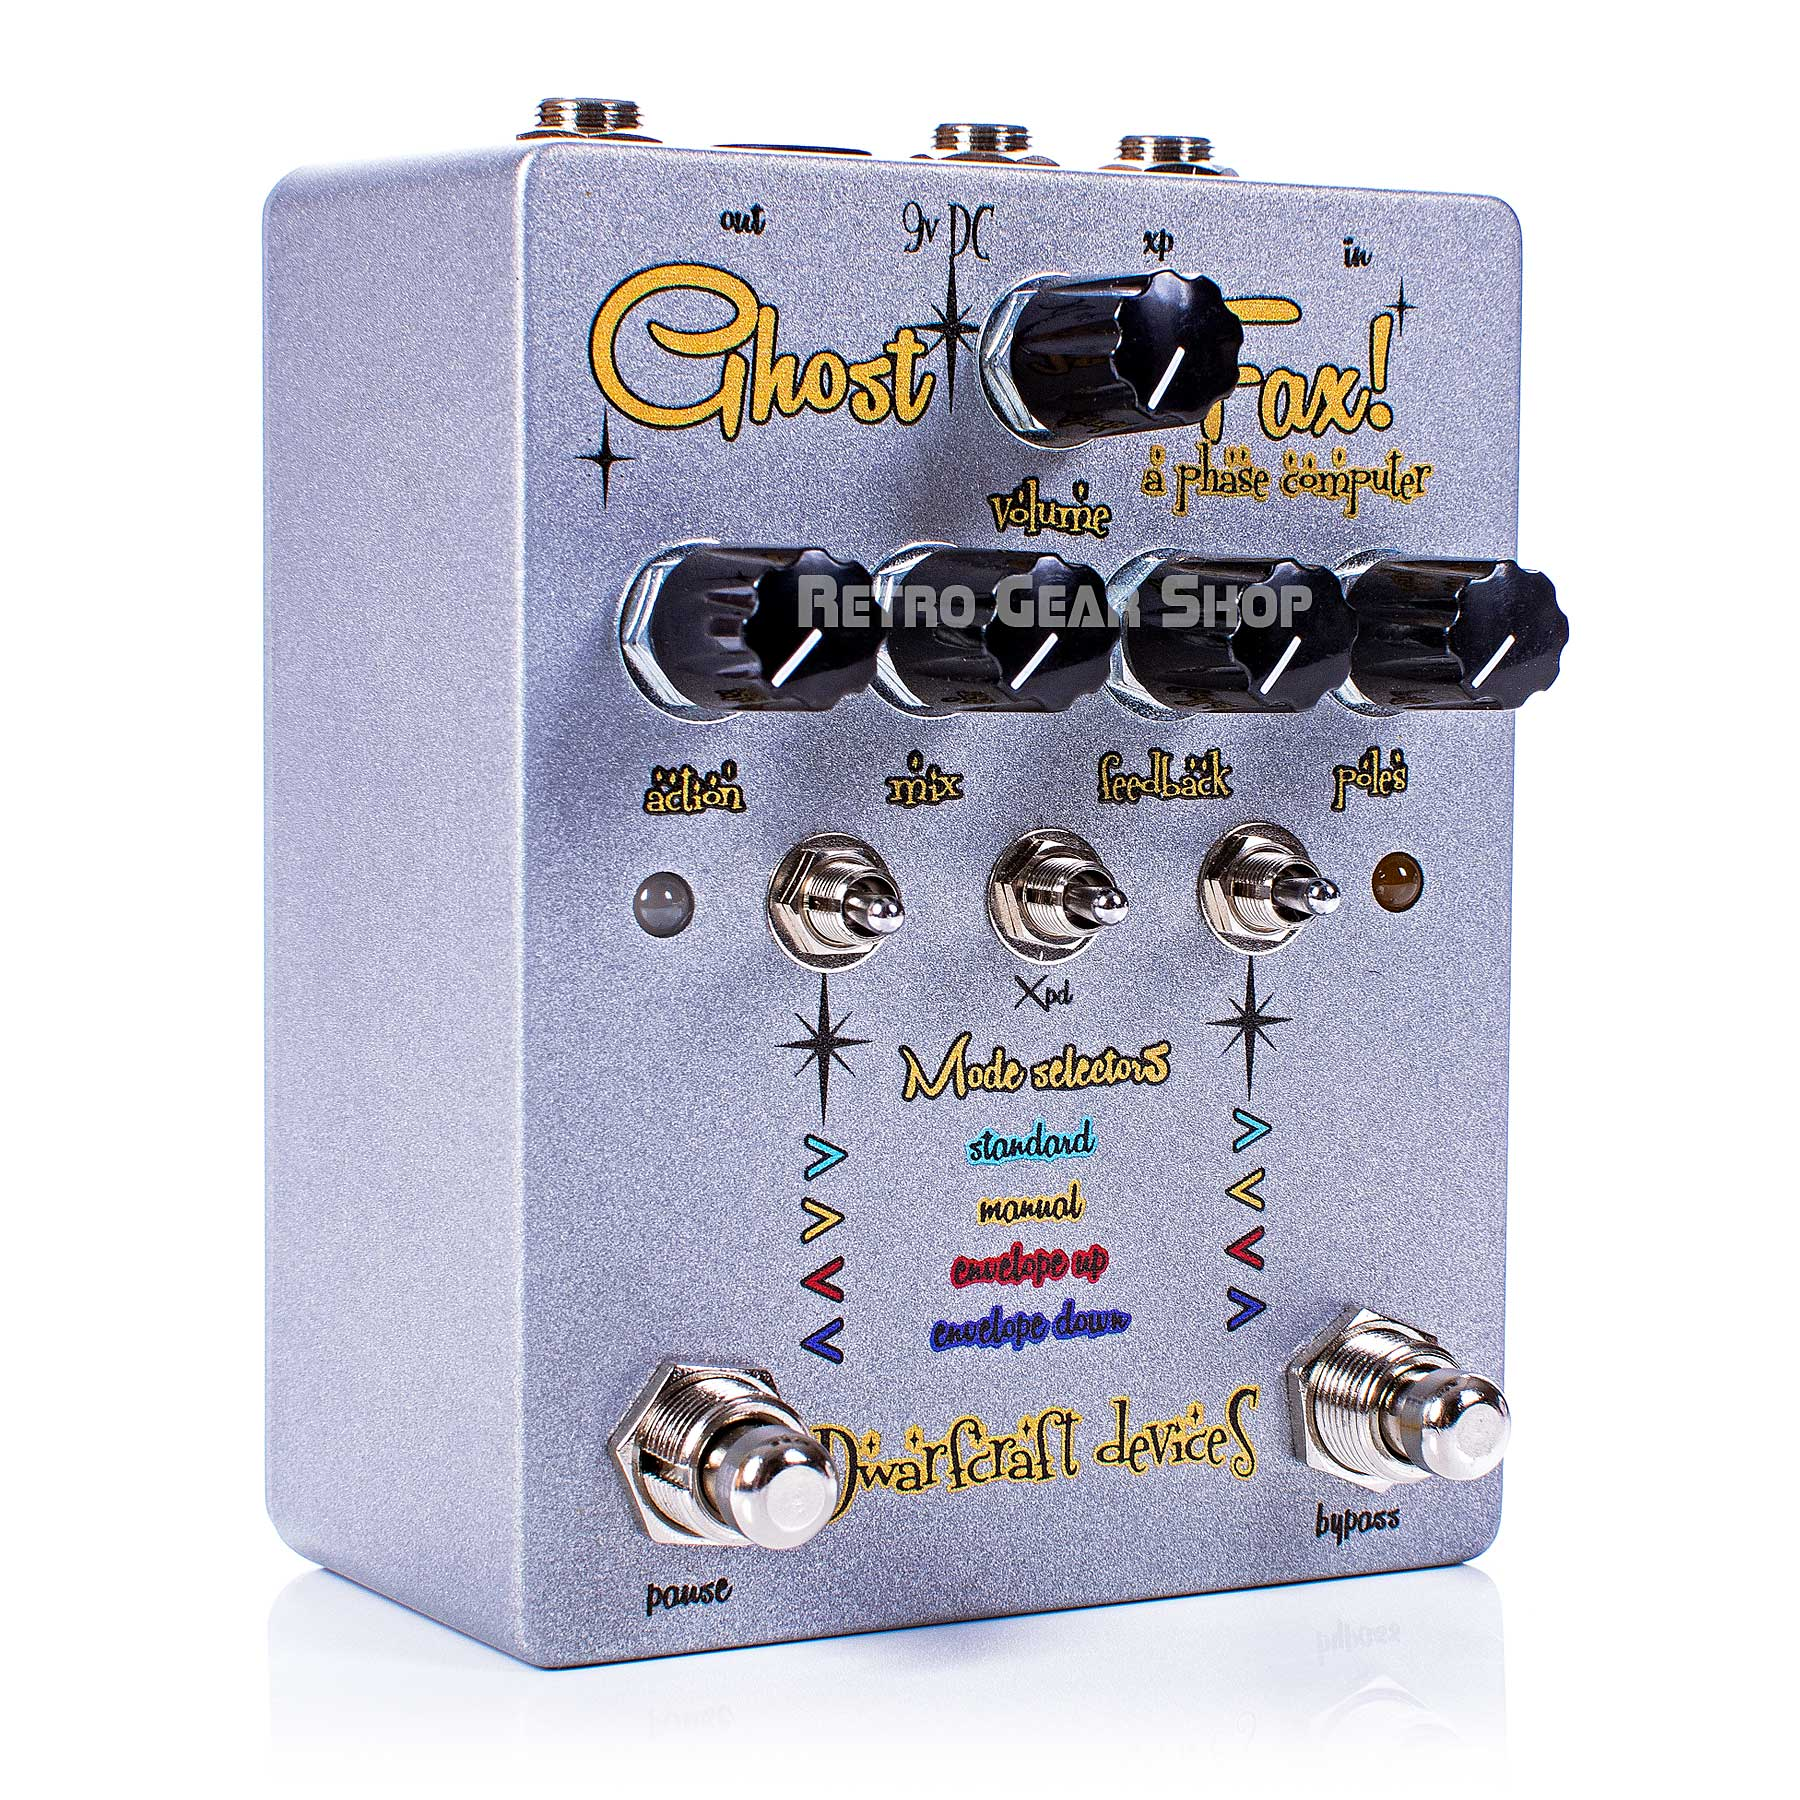 Dwarfcraft Devices Ghost Fax Phaser Pedal